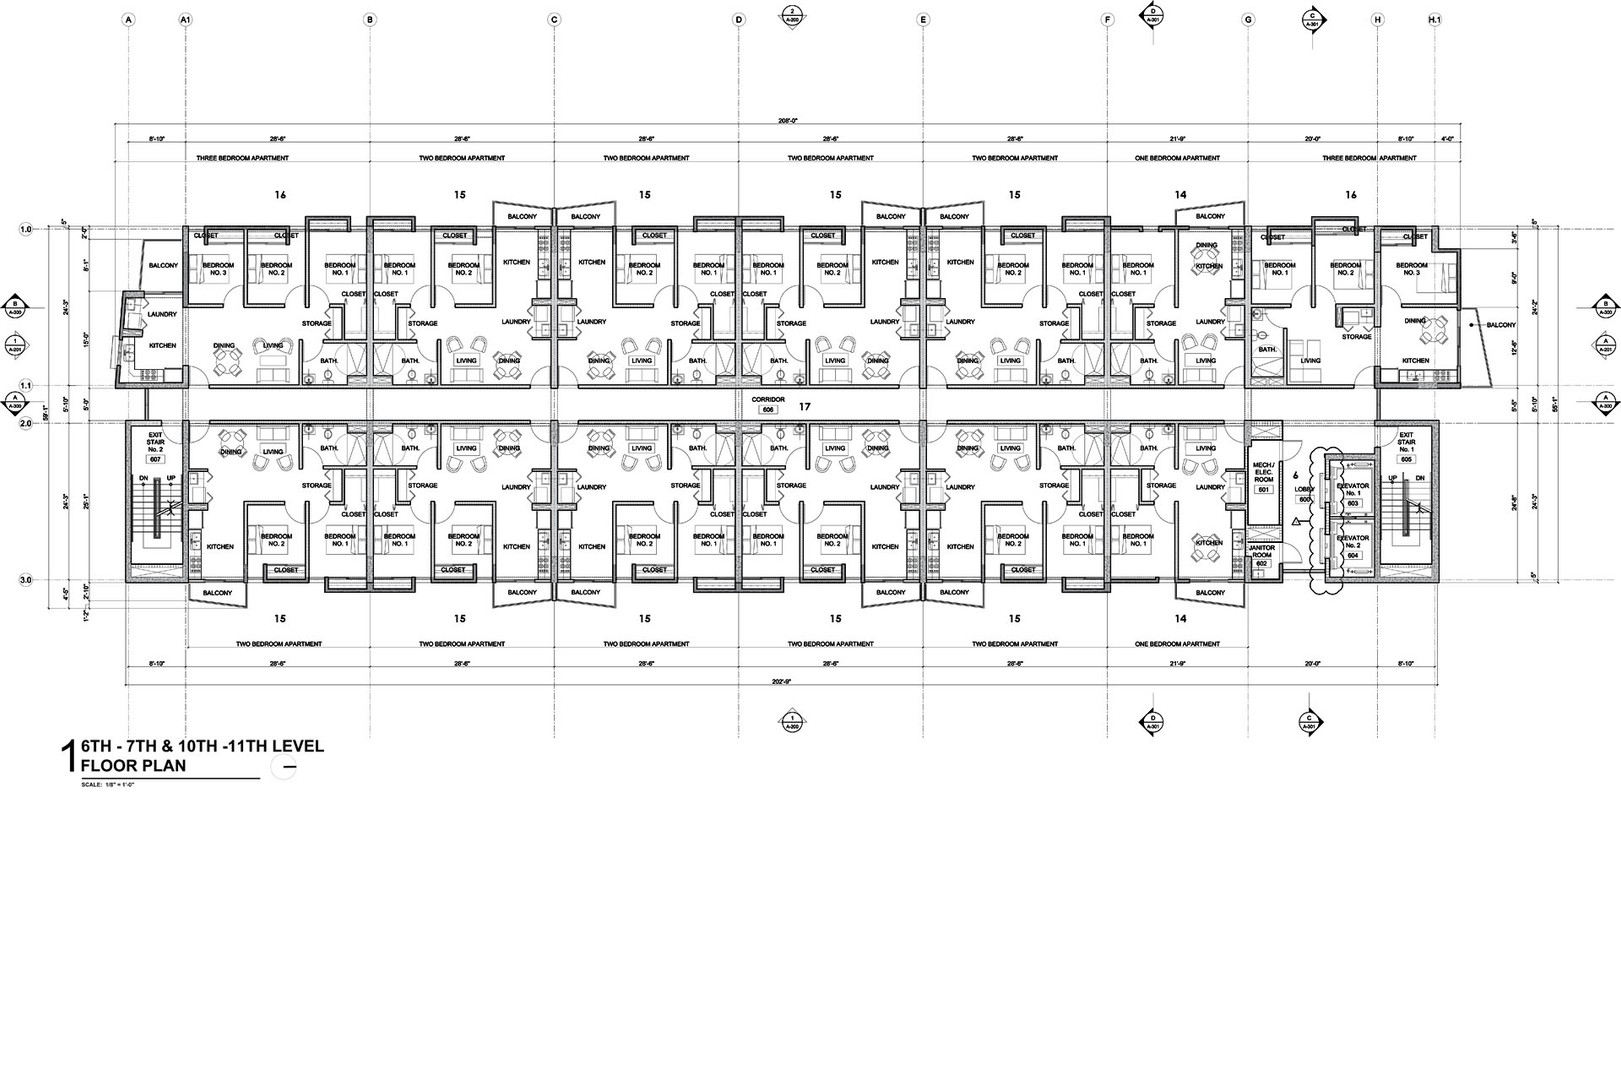 Sixth, seventh, tenth and eleventh levels floor plan